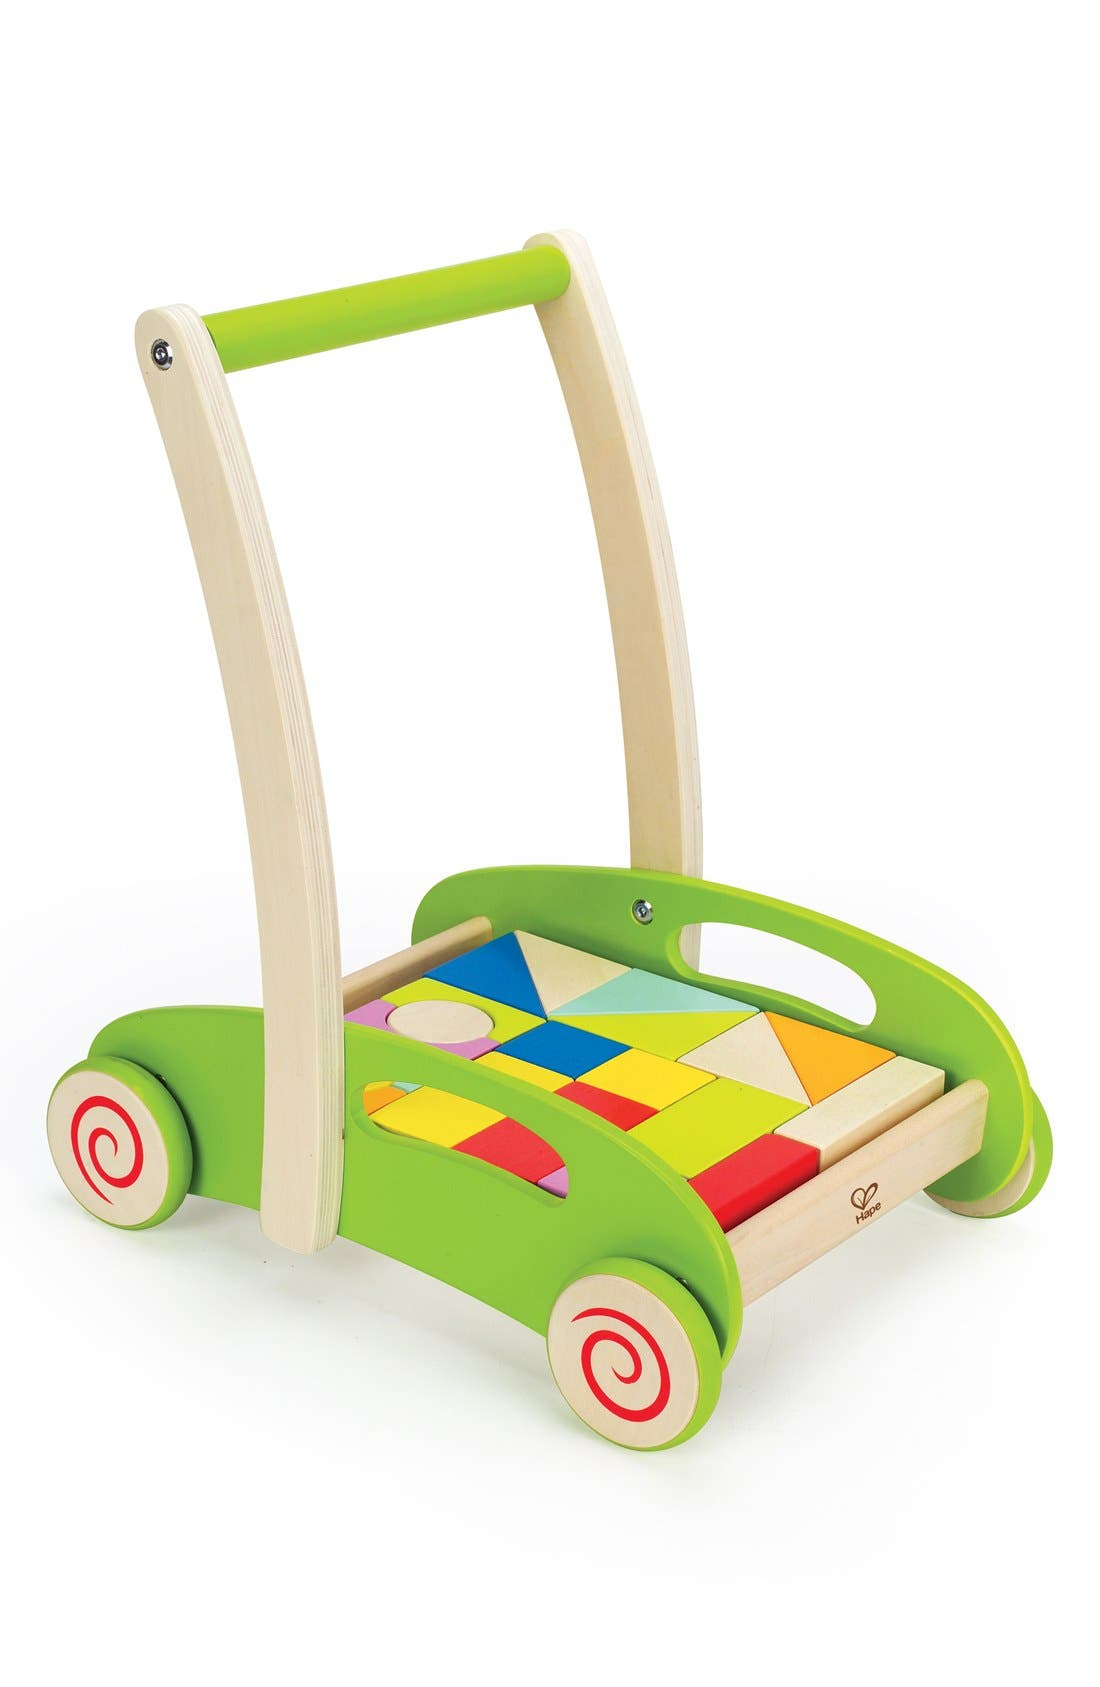 'Block & Roll' Push Toy,                             Main thumbnail 1, color,                             300